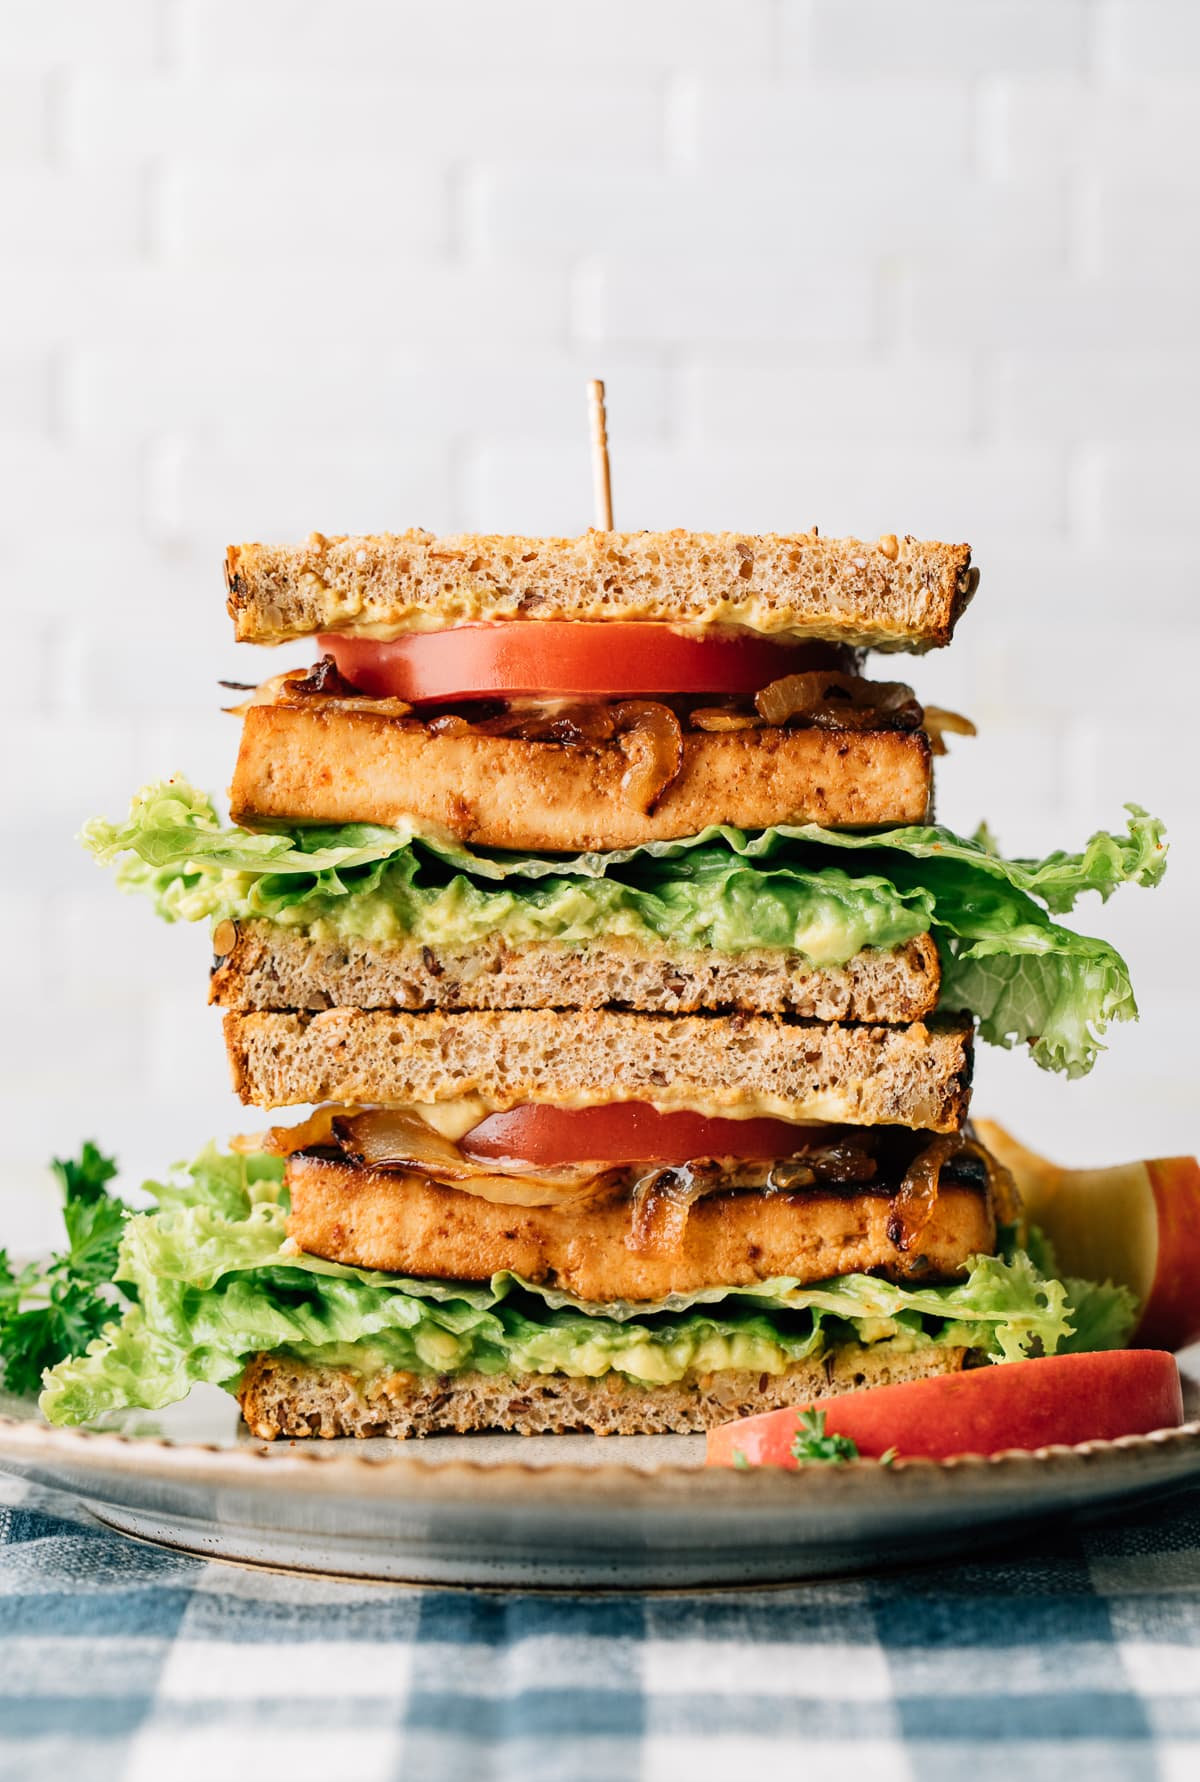 head on view of two halves of tofu sandwich stacked on a plate.